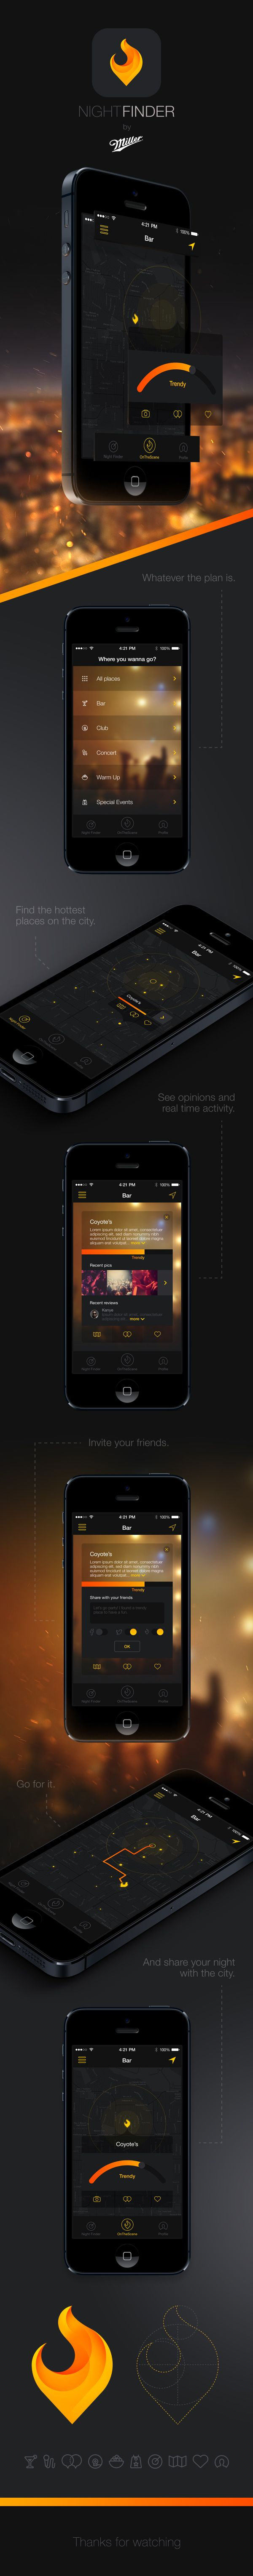 Night Finder App by Mario Sifuentes, via Behance